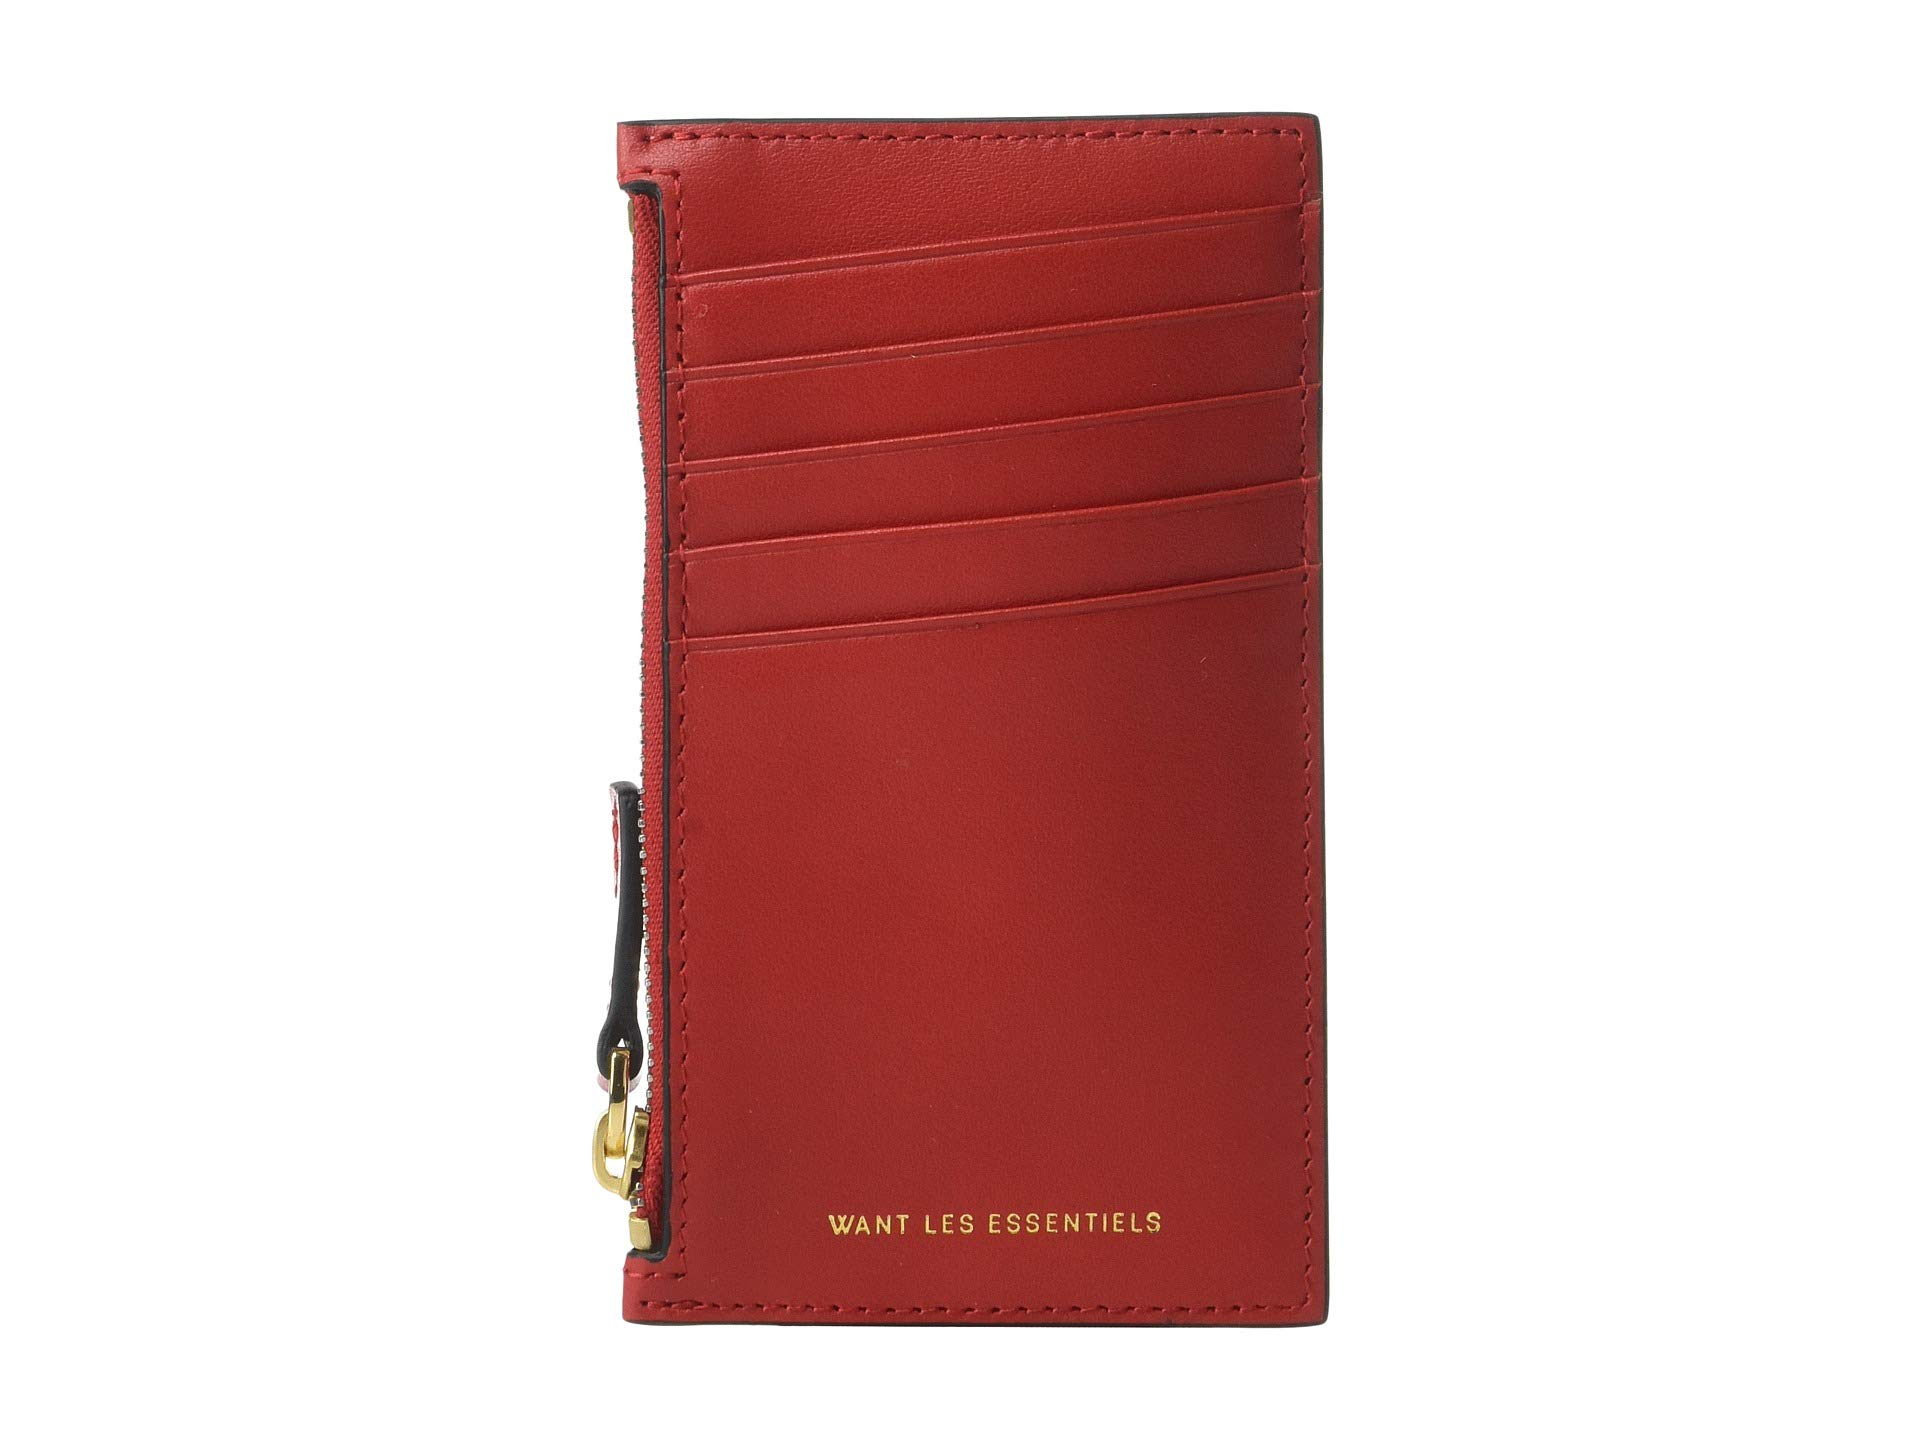 Zipped Essentiels True Les Holder Red Want Adana Card tZAawq